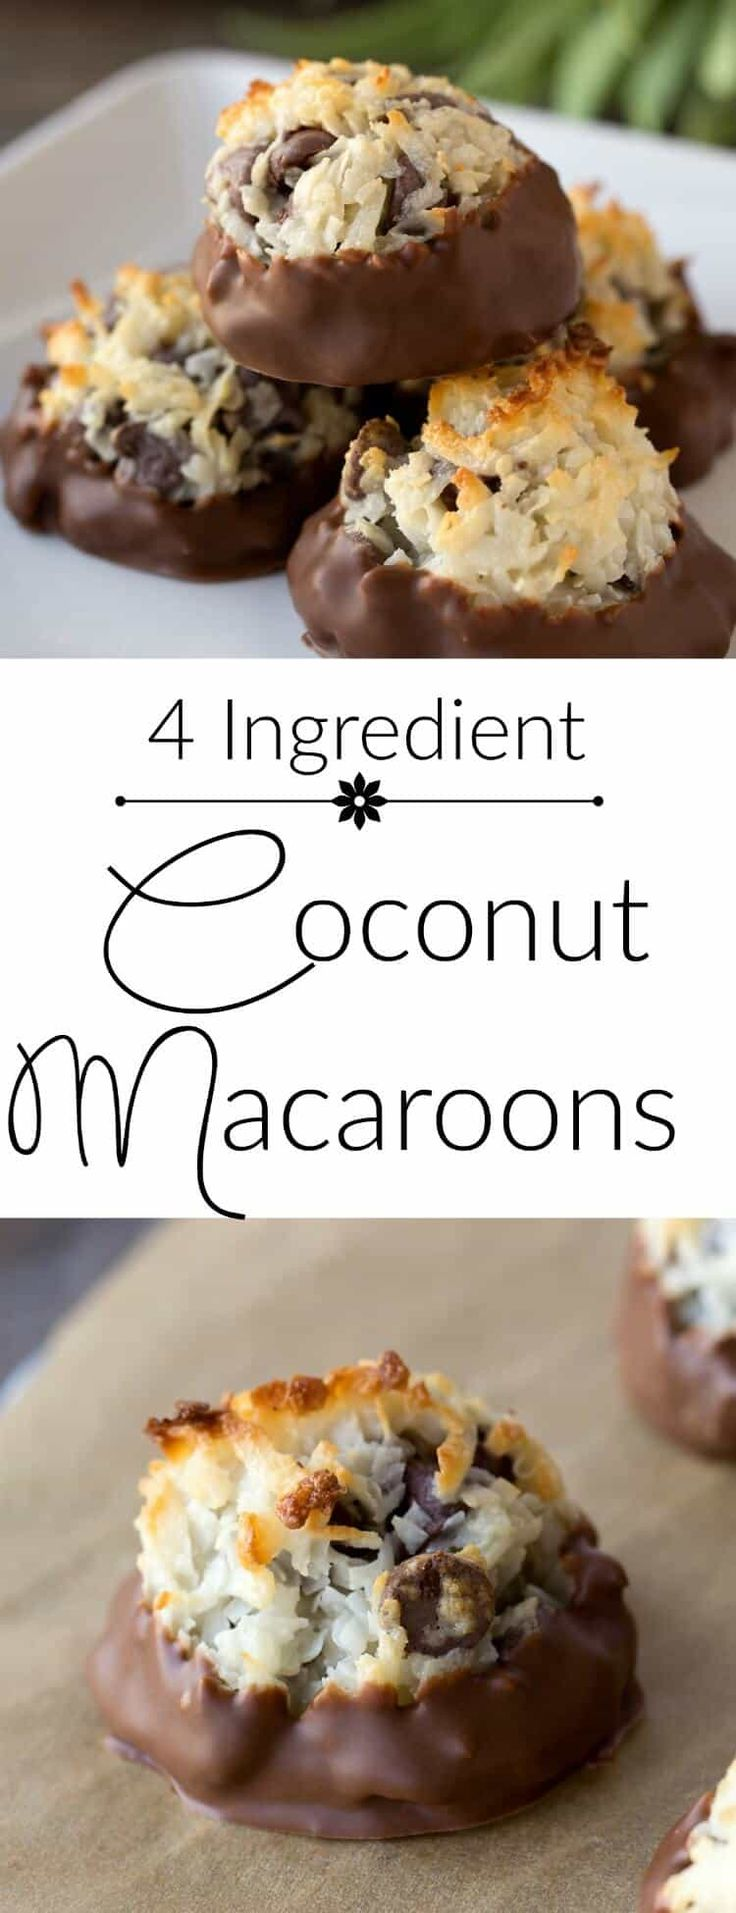 Coconut Macaroons Recipe - only four ingredients! If you love an Almond Joy or Mounds candy bar, you will go crazy for this! #coconut #macaroons #coconutchocolate #chocolate #coconutmacaroon #easydessert #passover #passoverdessert